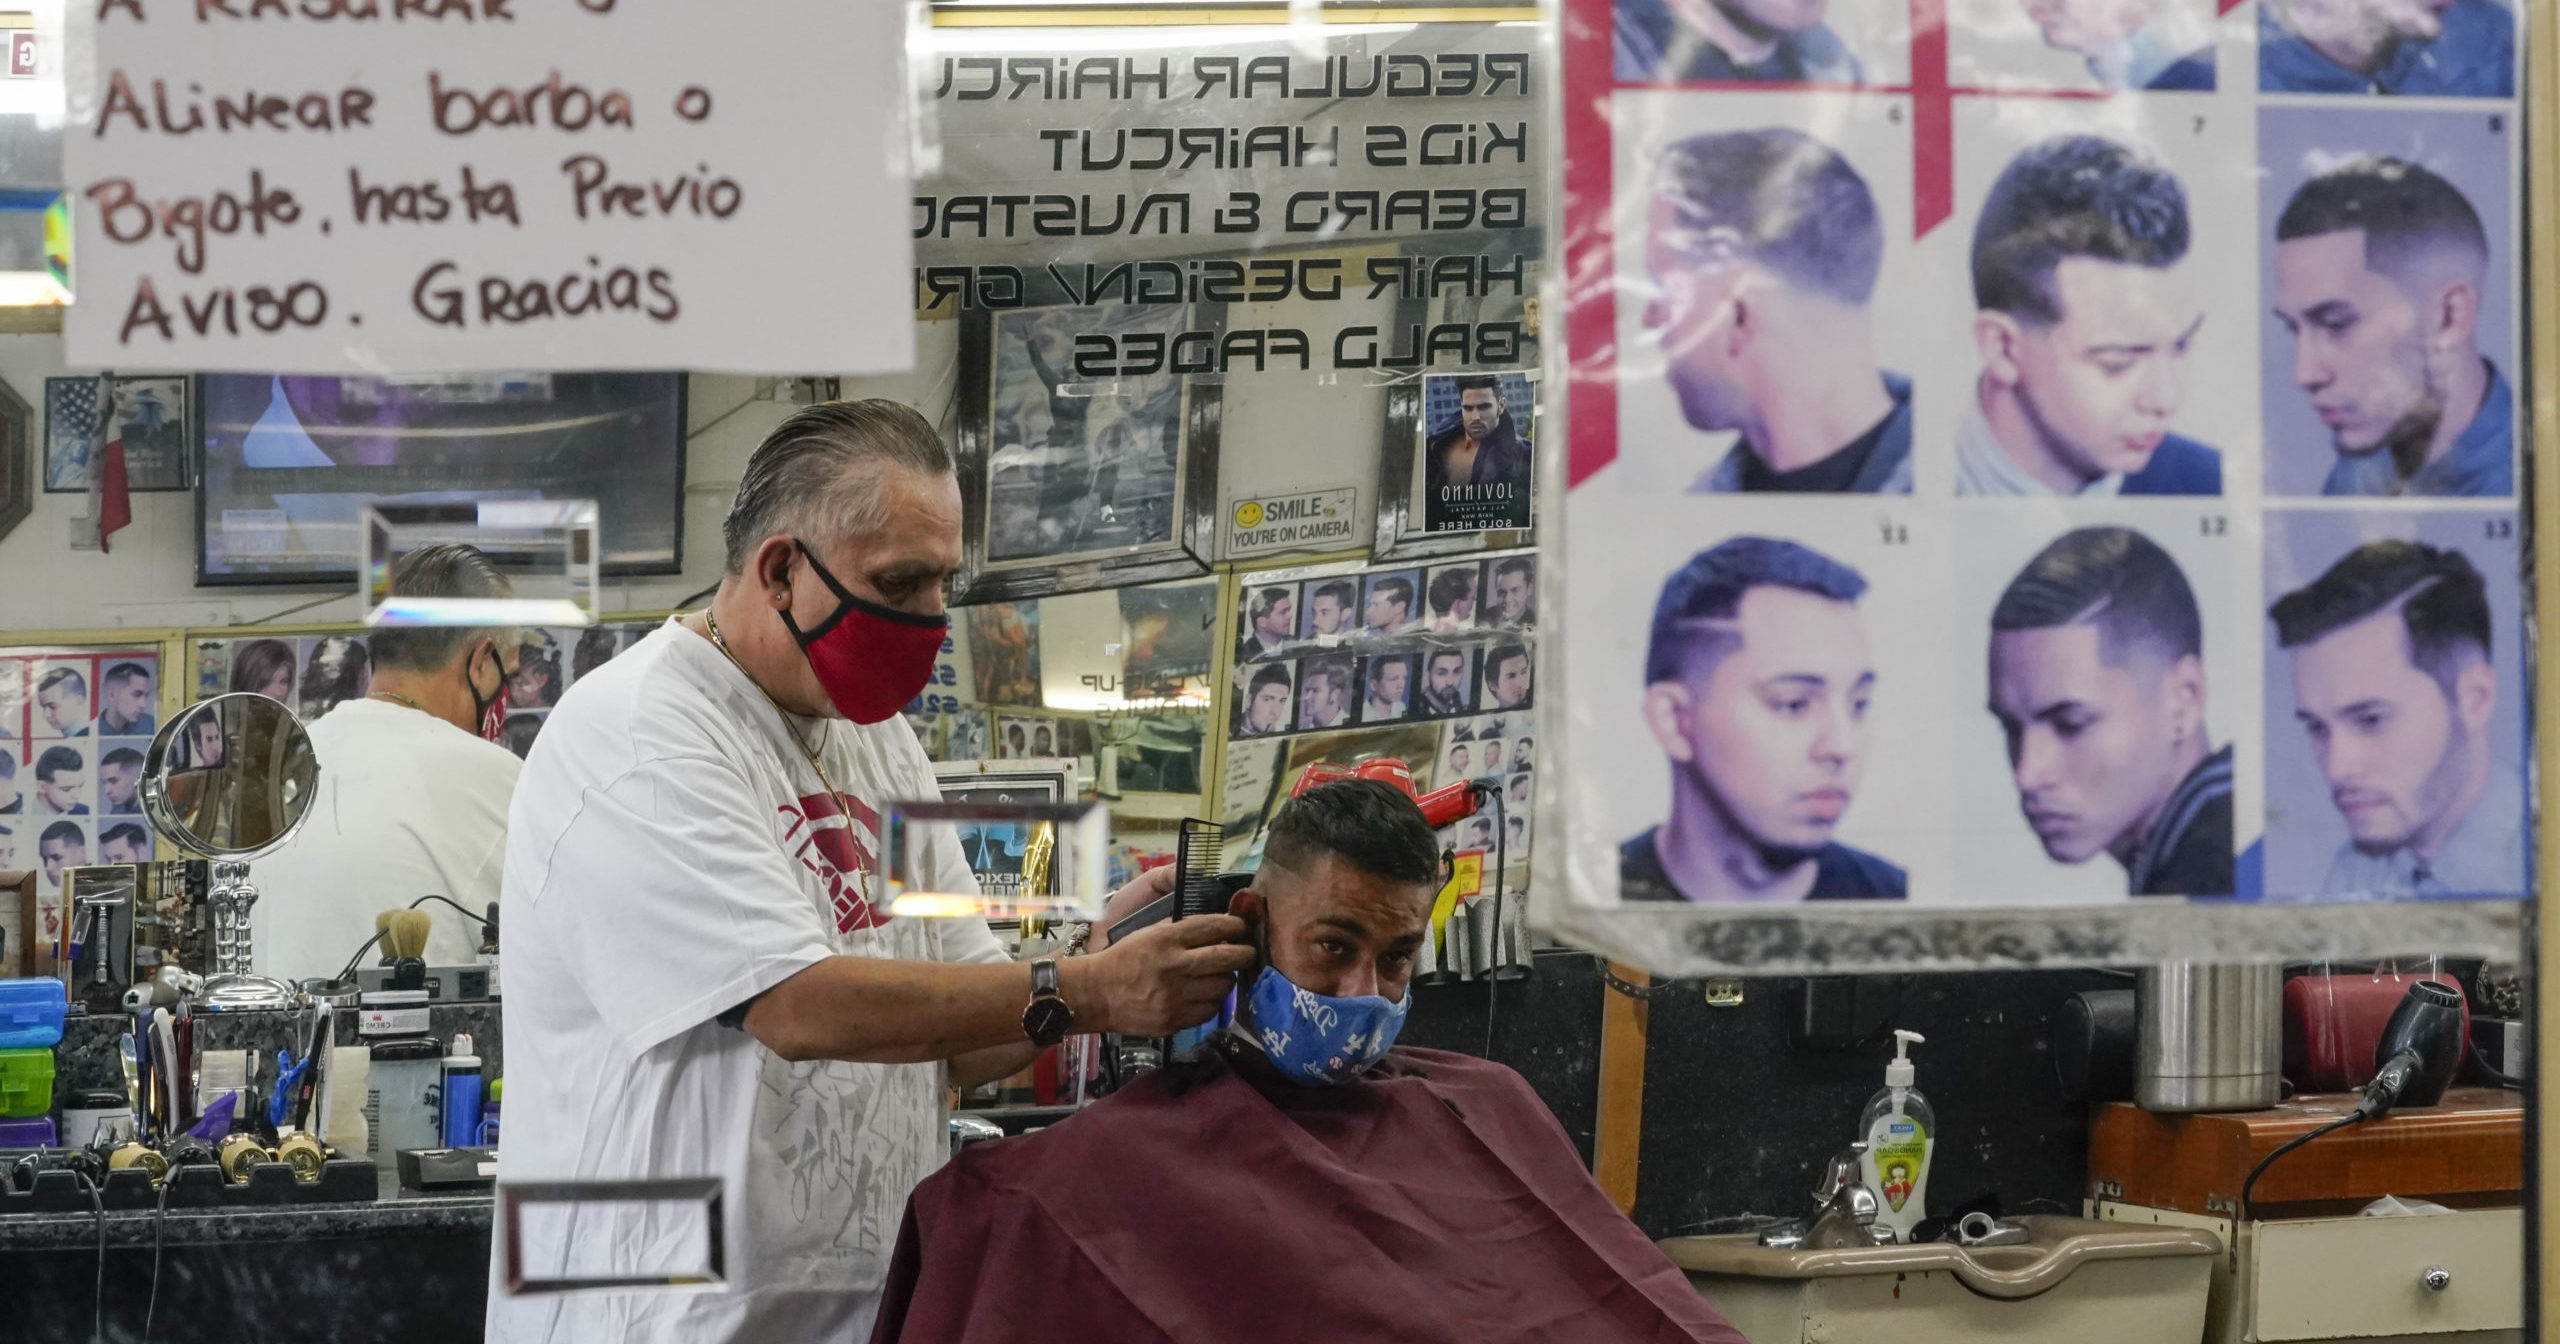 Edgar Gomez has his hair cut by George Garcia, owner of George's Barber Shop on July 14, 2020, in San Pedro, California. Gov. Gavin Newsom this week ordered that indoor businesses including salons and barber shops close due to the spread of COVID-19.